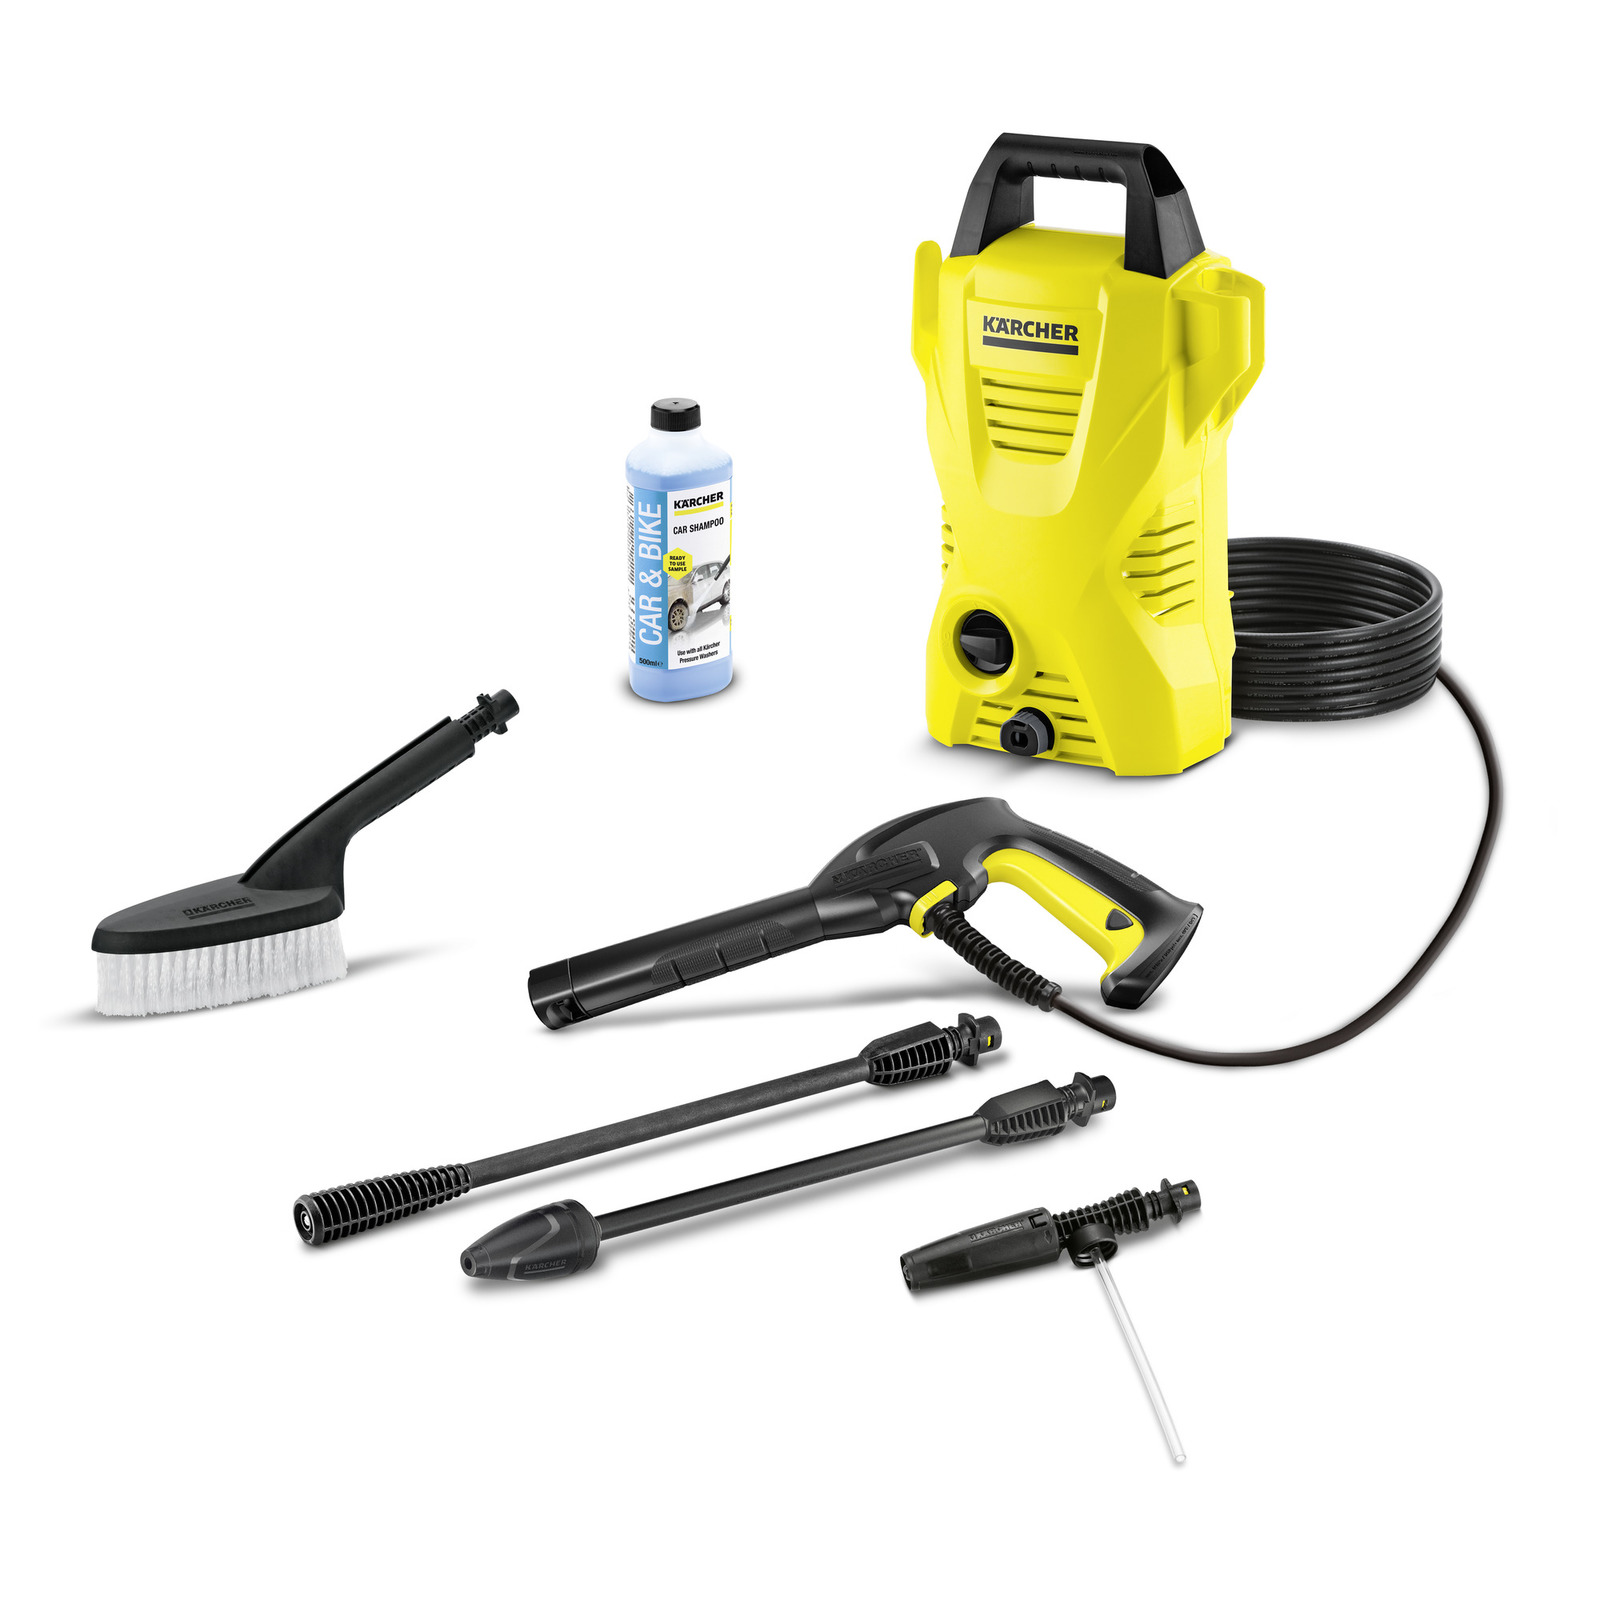 Lot 50029 - V Brand New Karcher K2 Compact Car High Pressure Cleaner With Wash Brush - Foam Nozzle & Car Shampoo